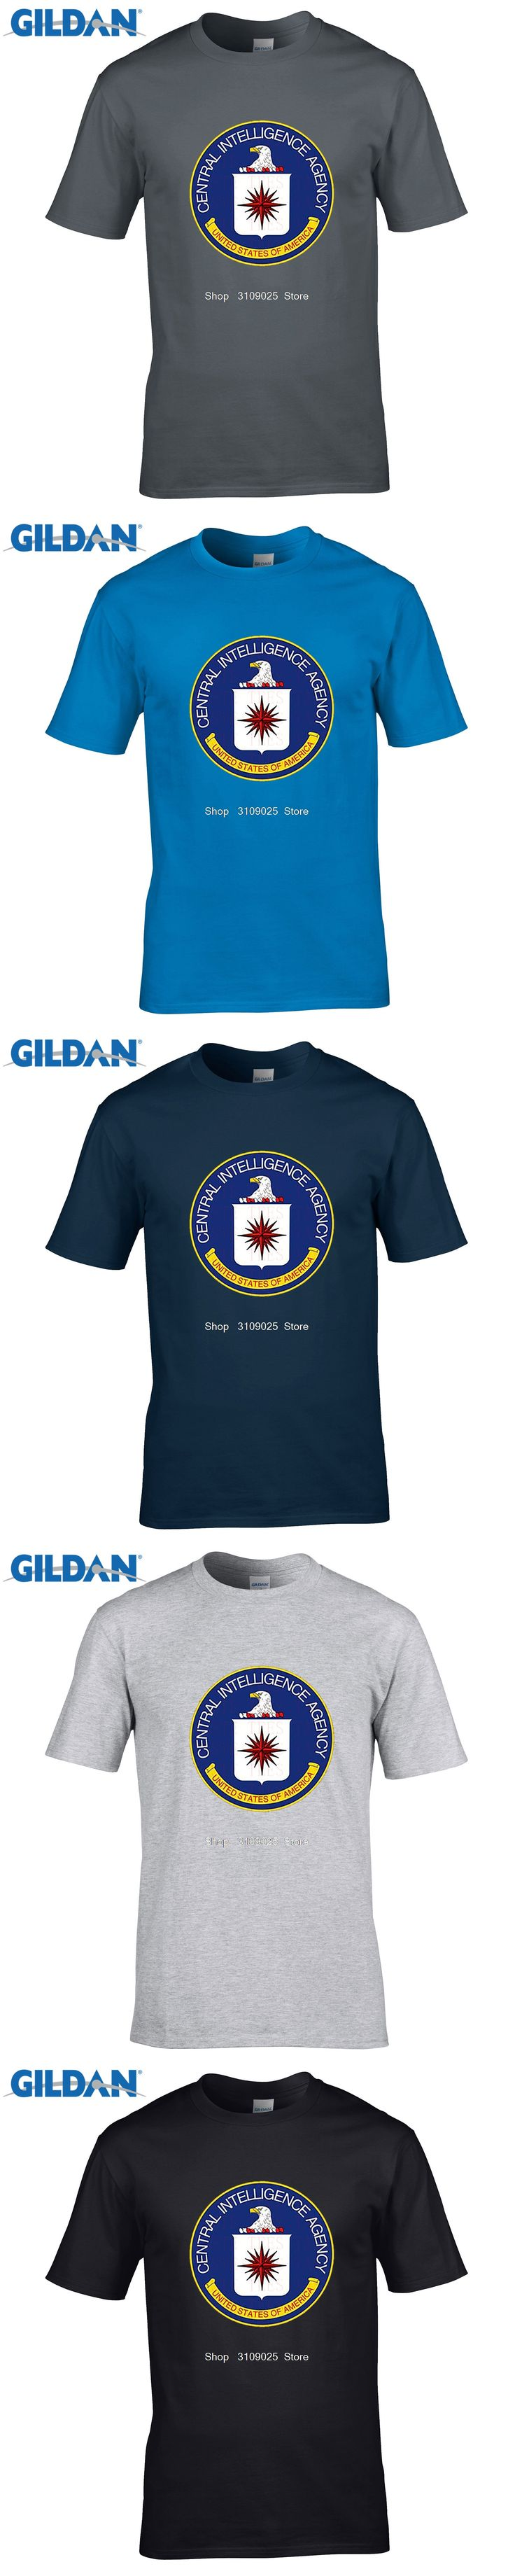 GILDAN Summer Mens CIA Central Intelligence Agency Simple T Shirt USA Navy Black Cotton O Neck Shirt Tops Brand Clothing